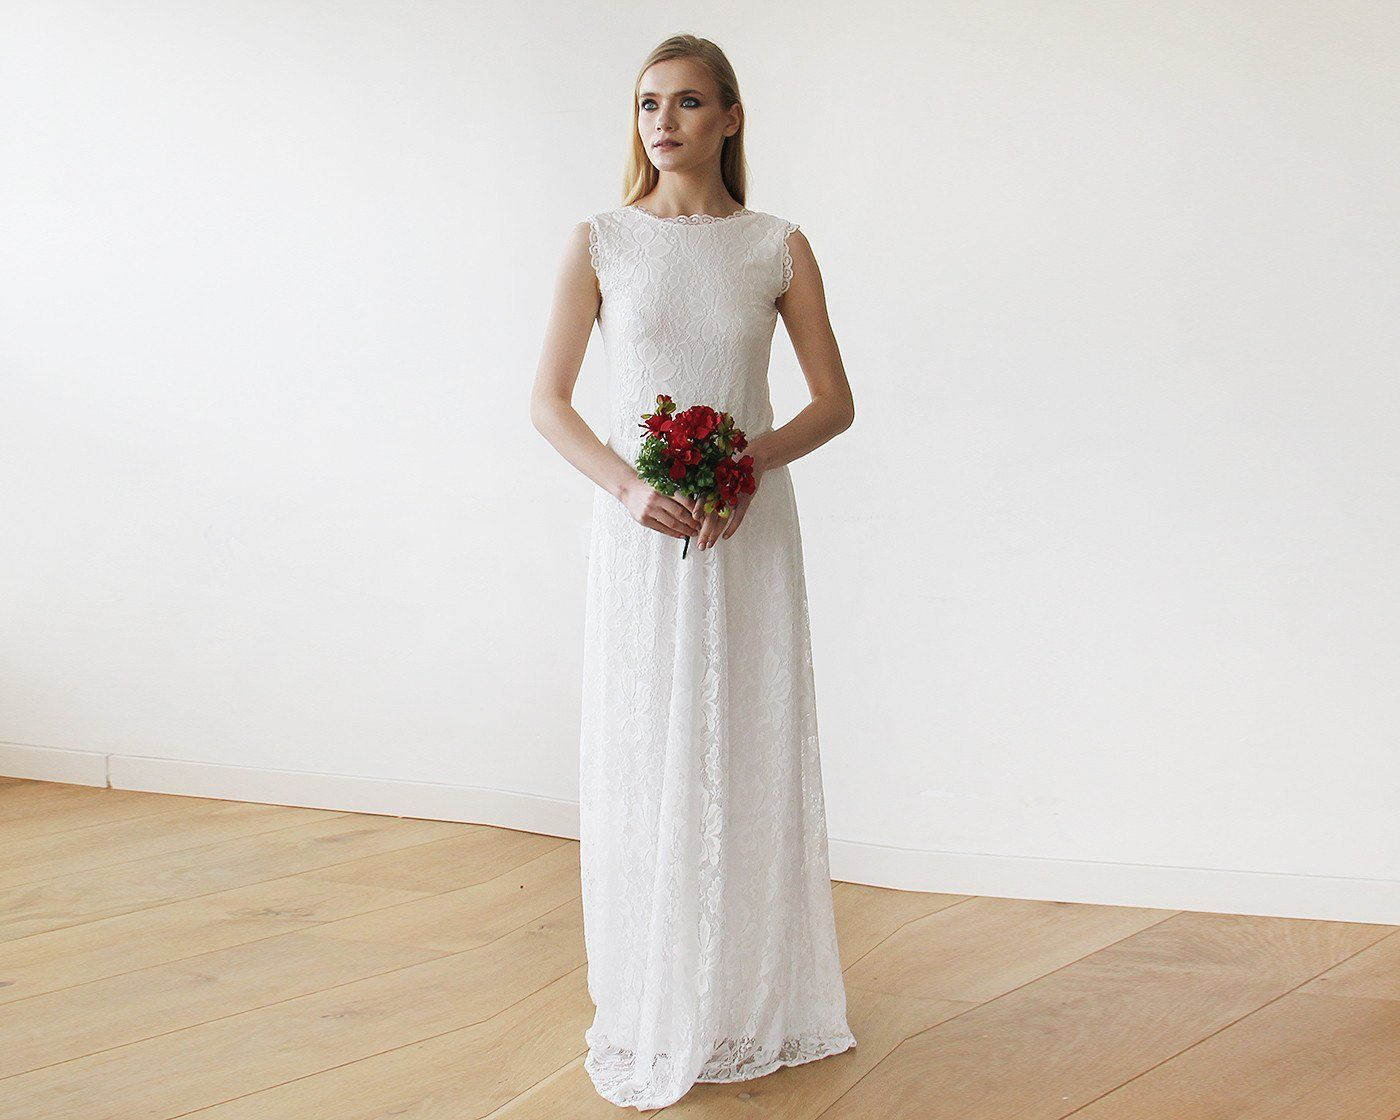 blushfashion wedding dress shop online Sleeveless Ivory Floral lace Bridal Gown With Open Back